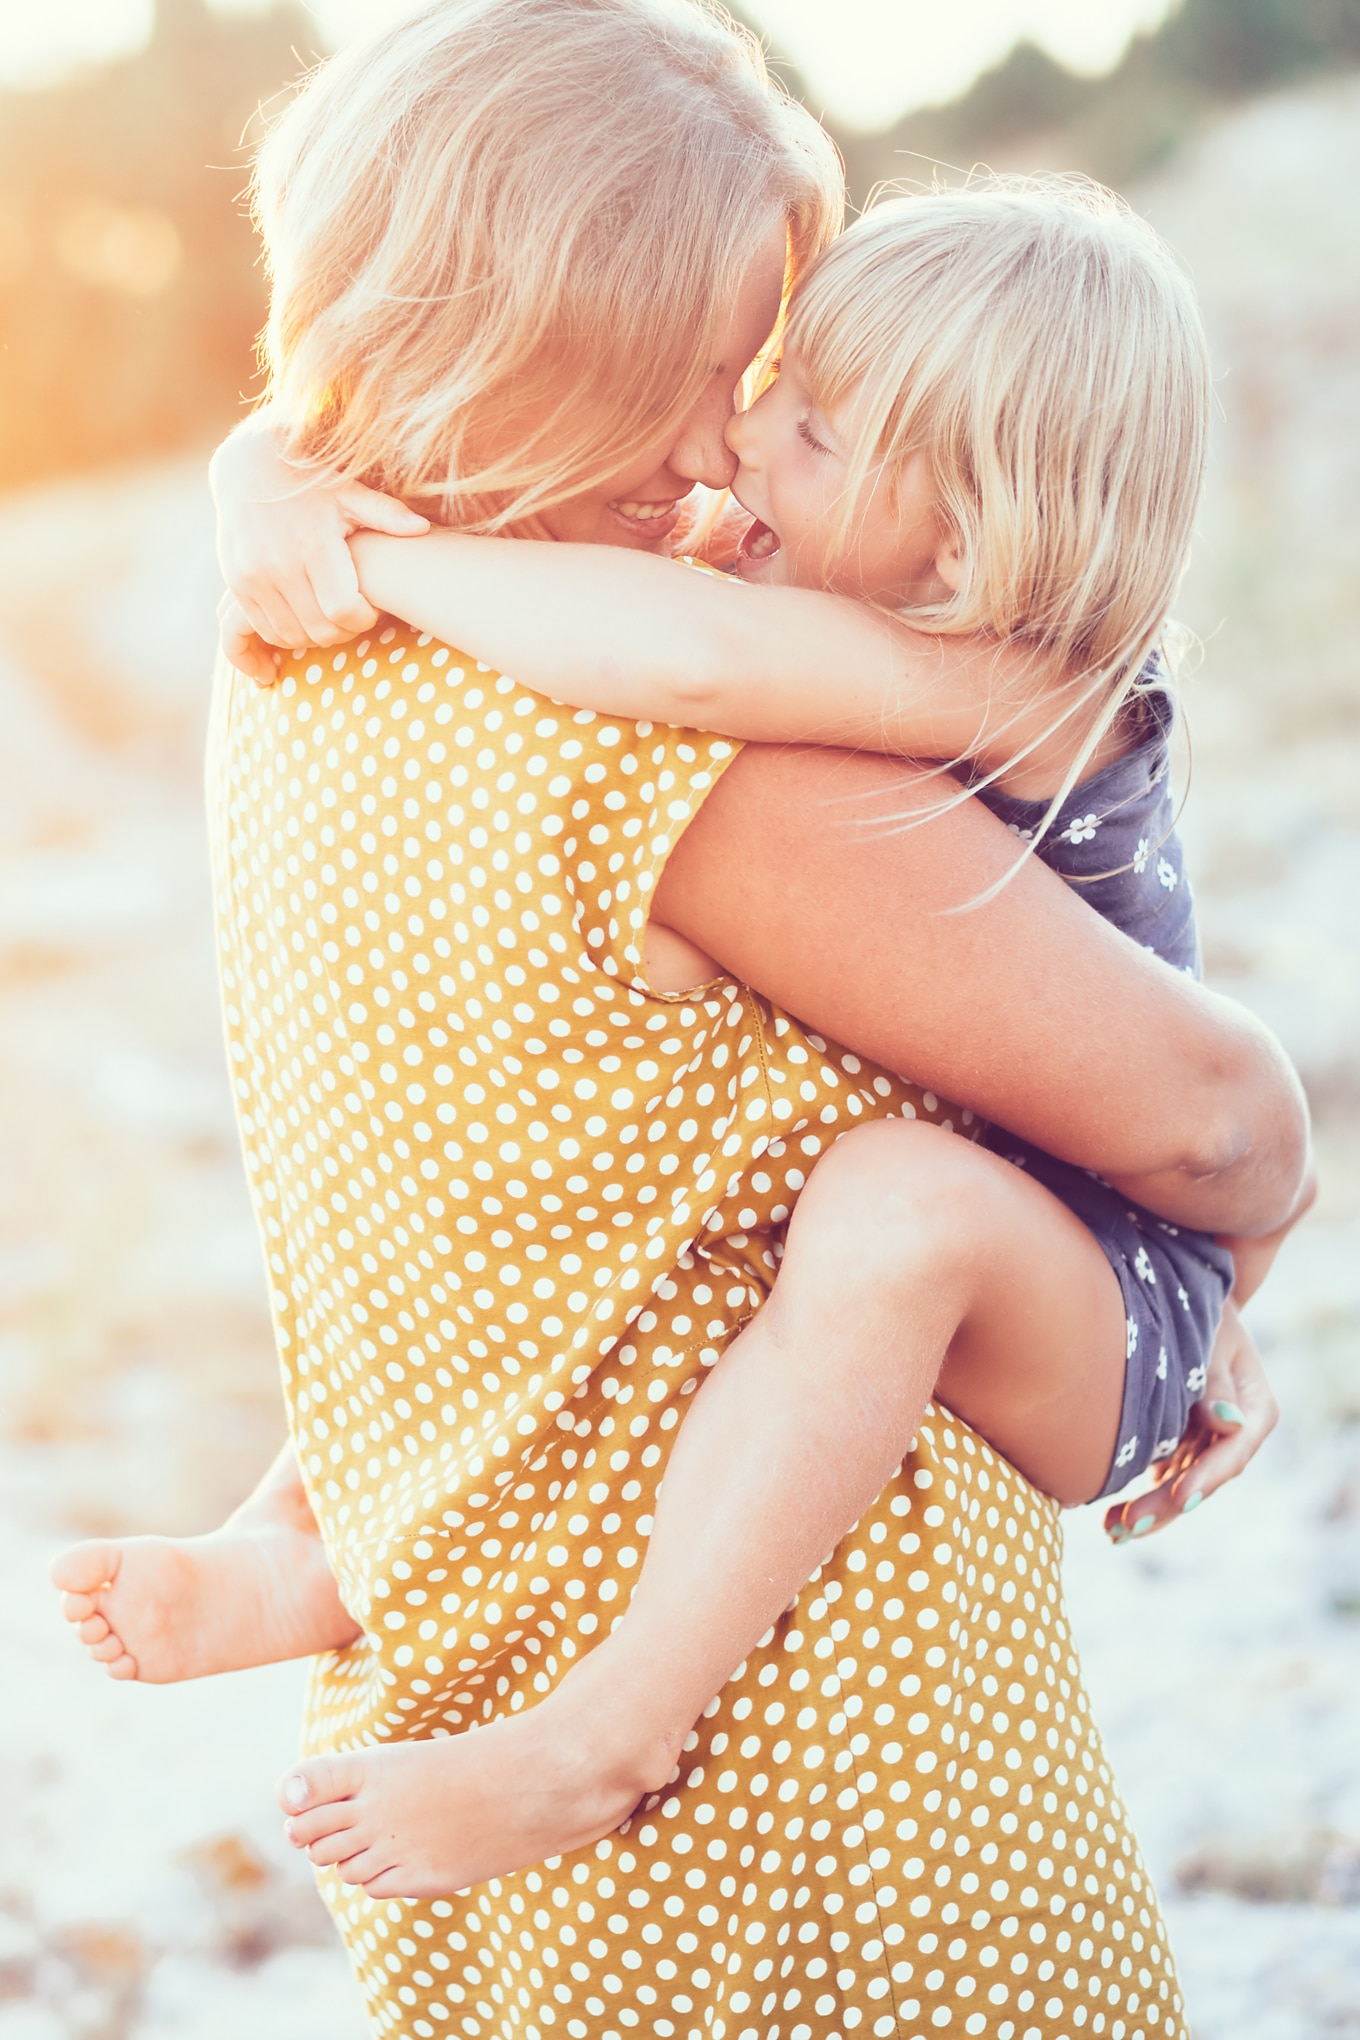 Motherhood is never-ending barrage of trial and error, tears and laughter, mess ups and successes. We mess up, rebuild, heal…then mess up again.